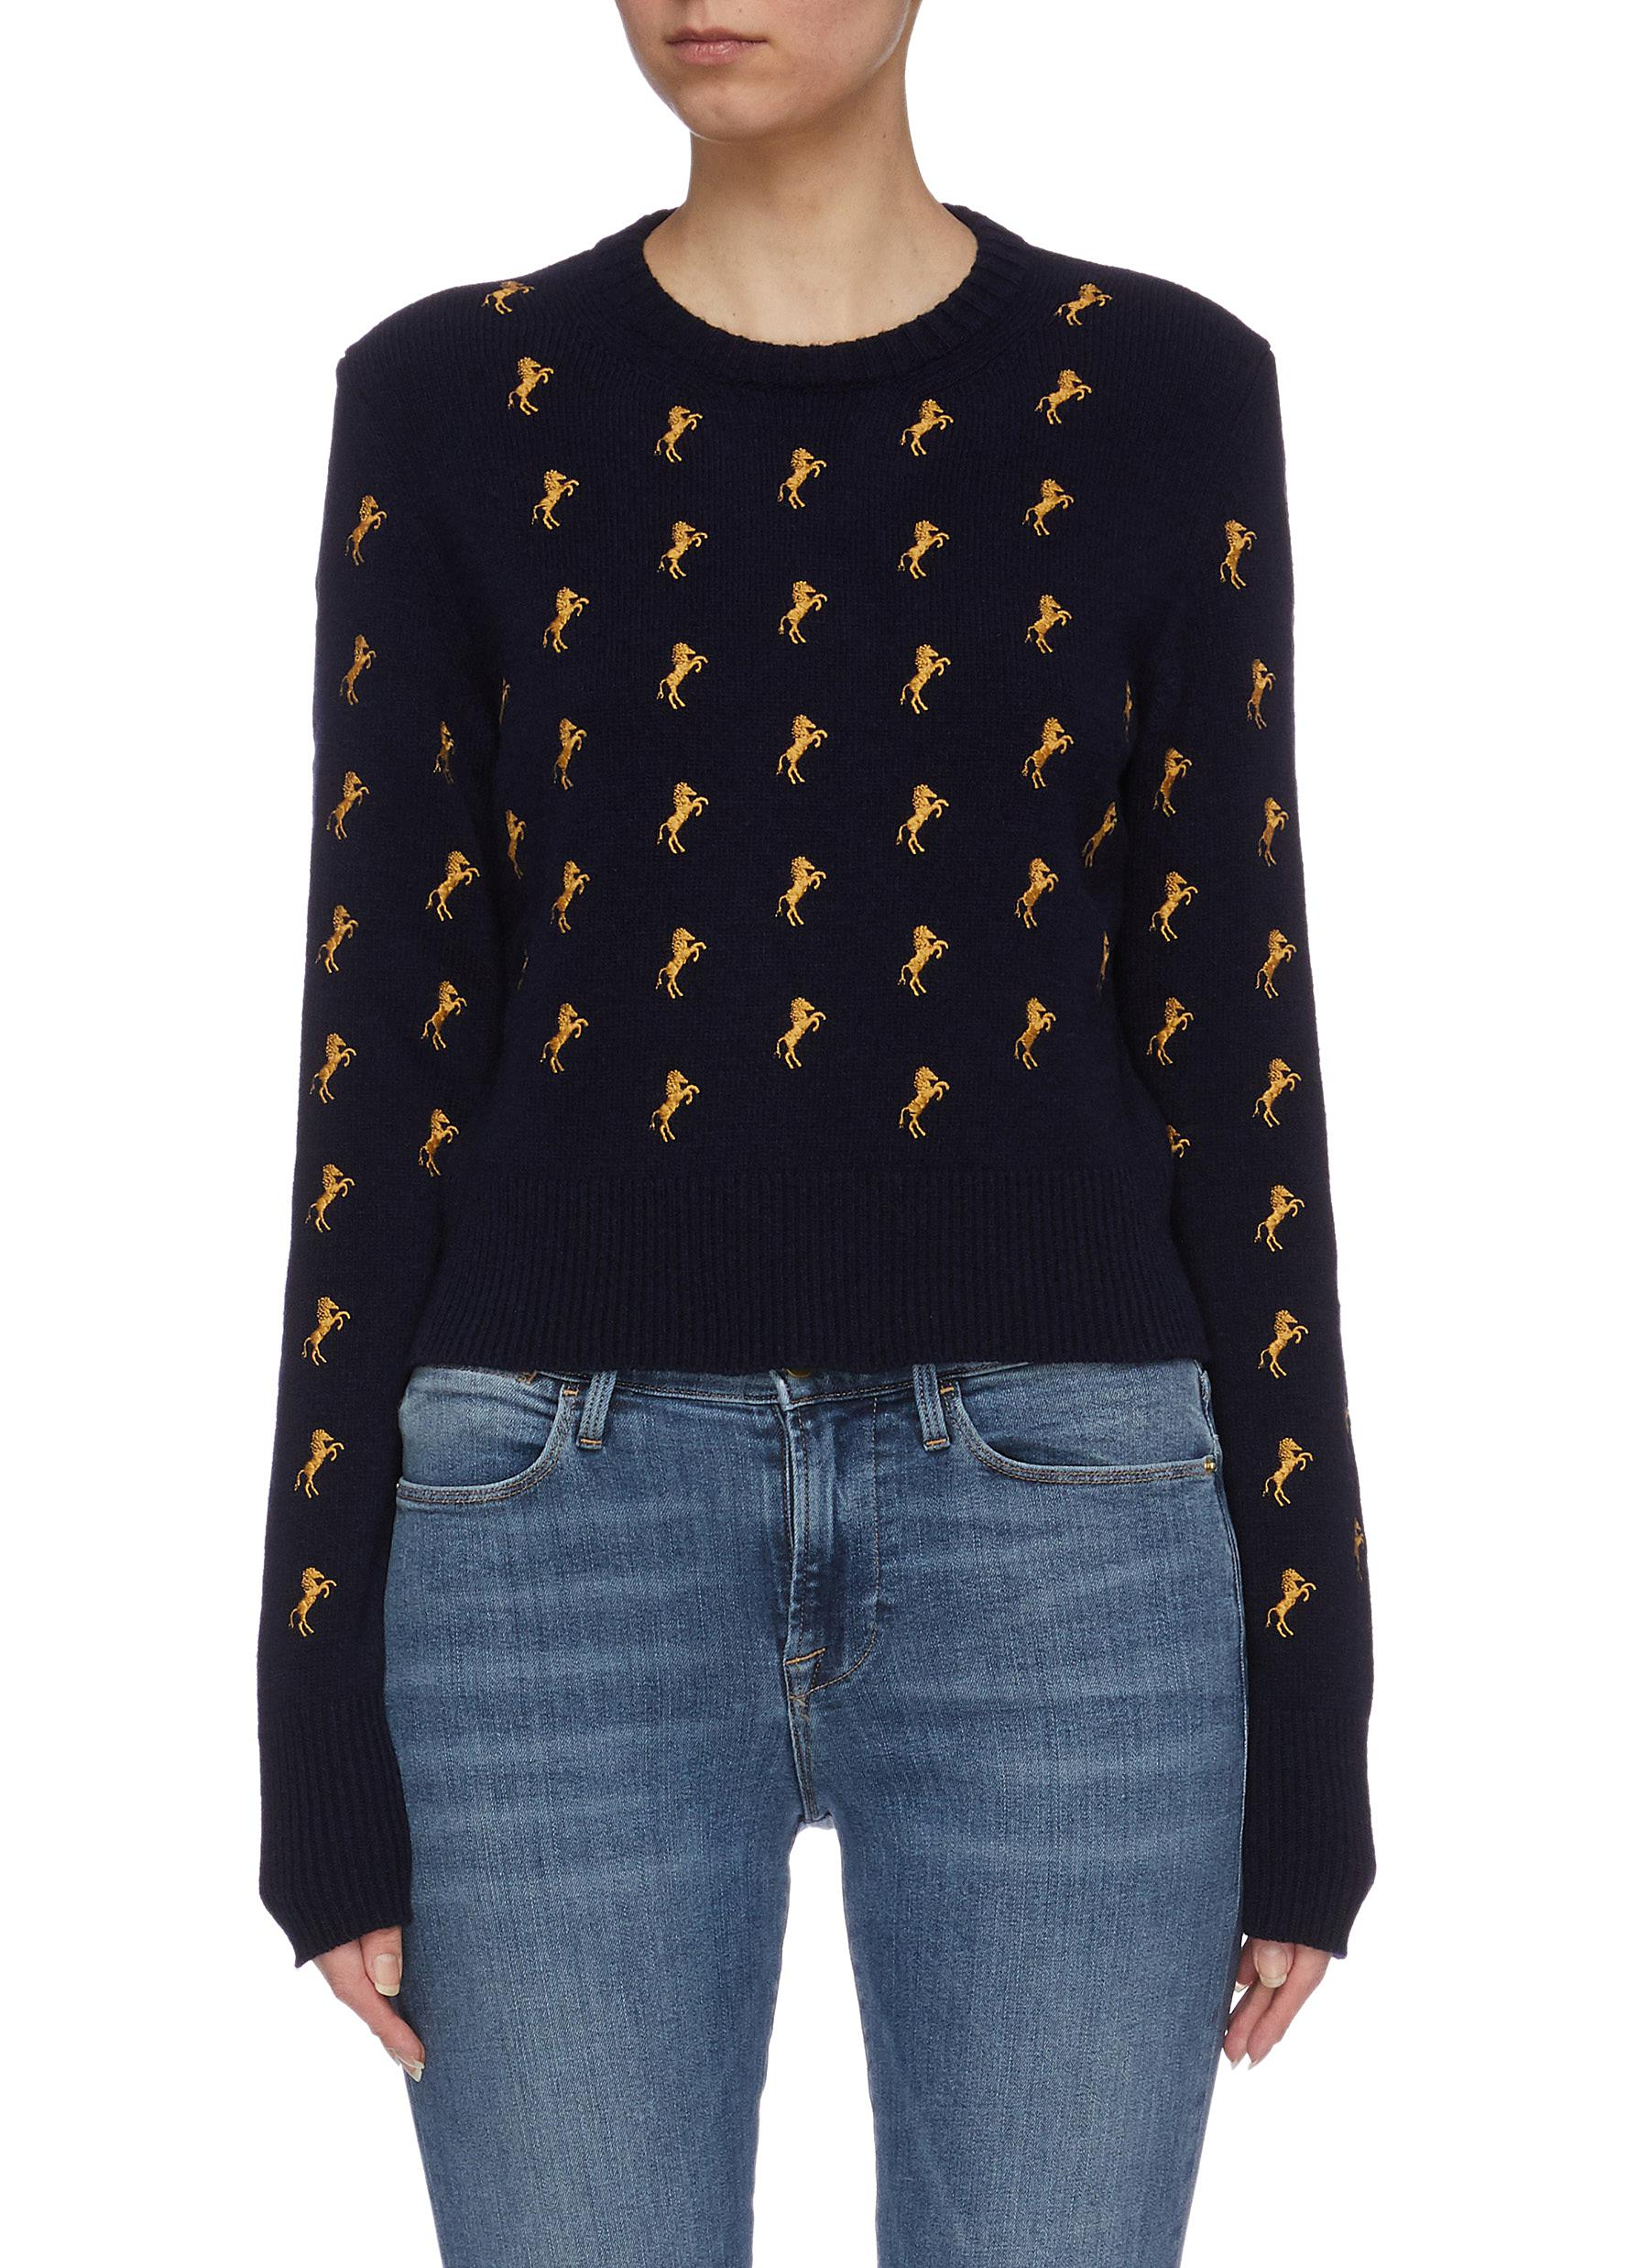 Tie keyhole back horse embroidered cropped sweater by Chloé